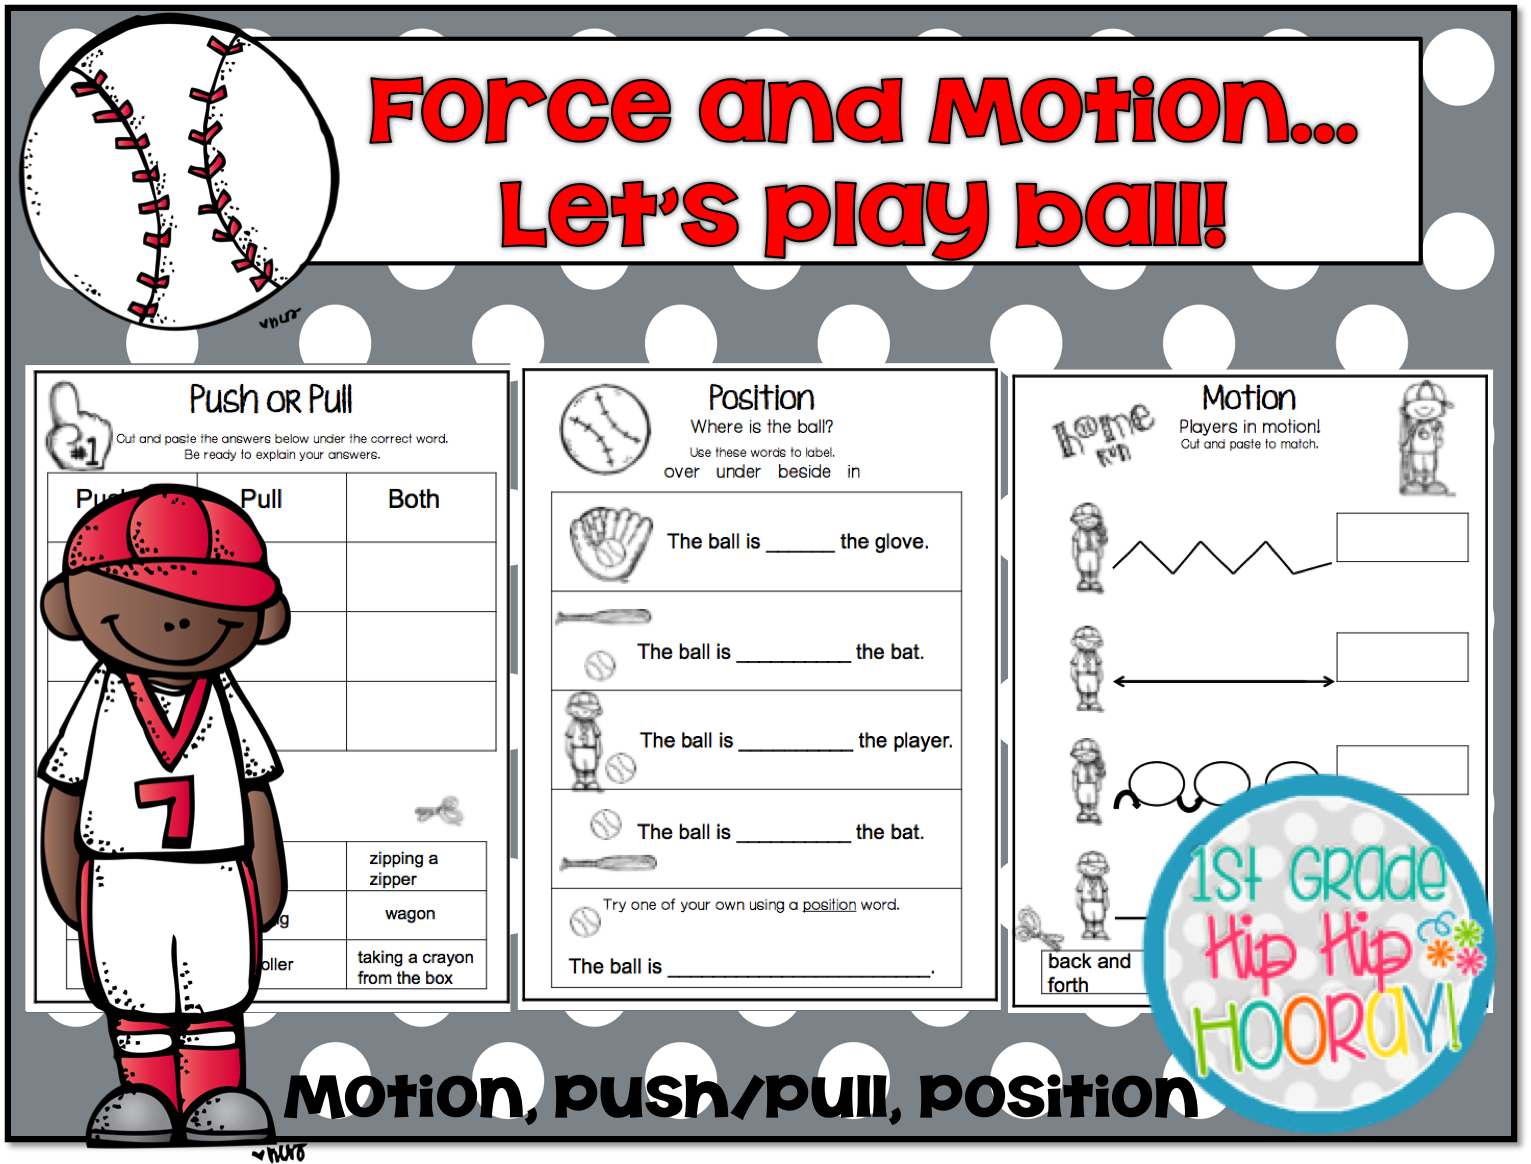 1st Grade Hip Hip Hooray Force And Motion Let S Play Ball